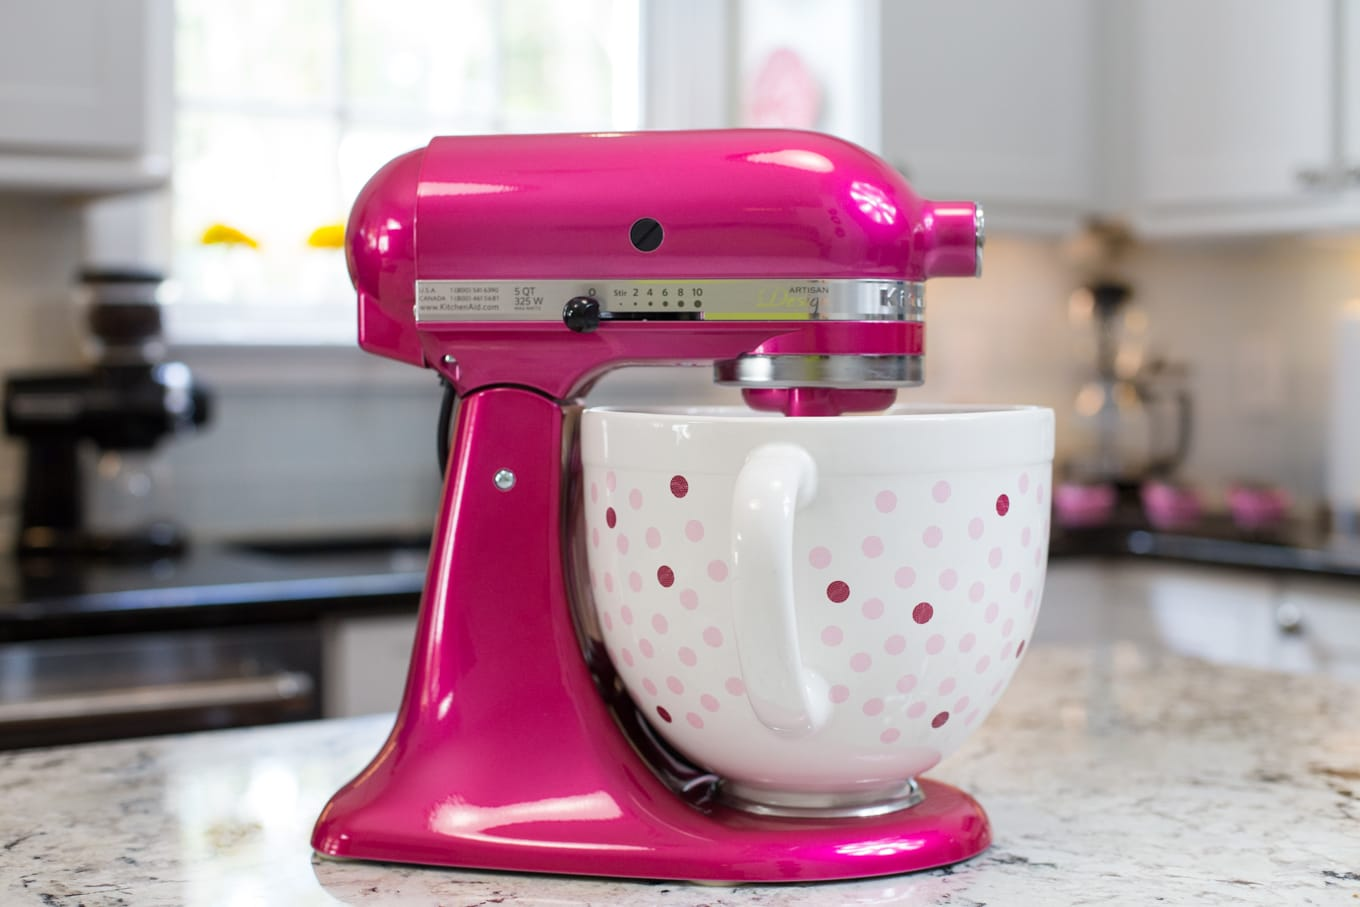 KitchenAid Raspberry Ice Artisan Mixer with Polka Dot Bowl - created to help promote awareness and help fund the fight against breast cancer.